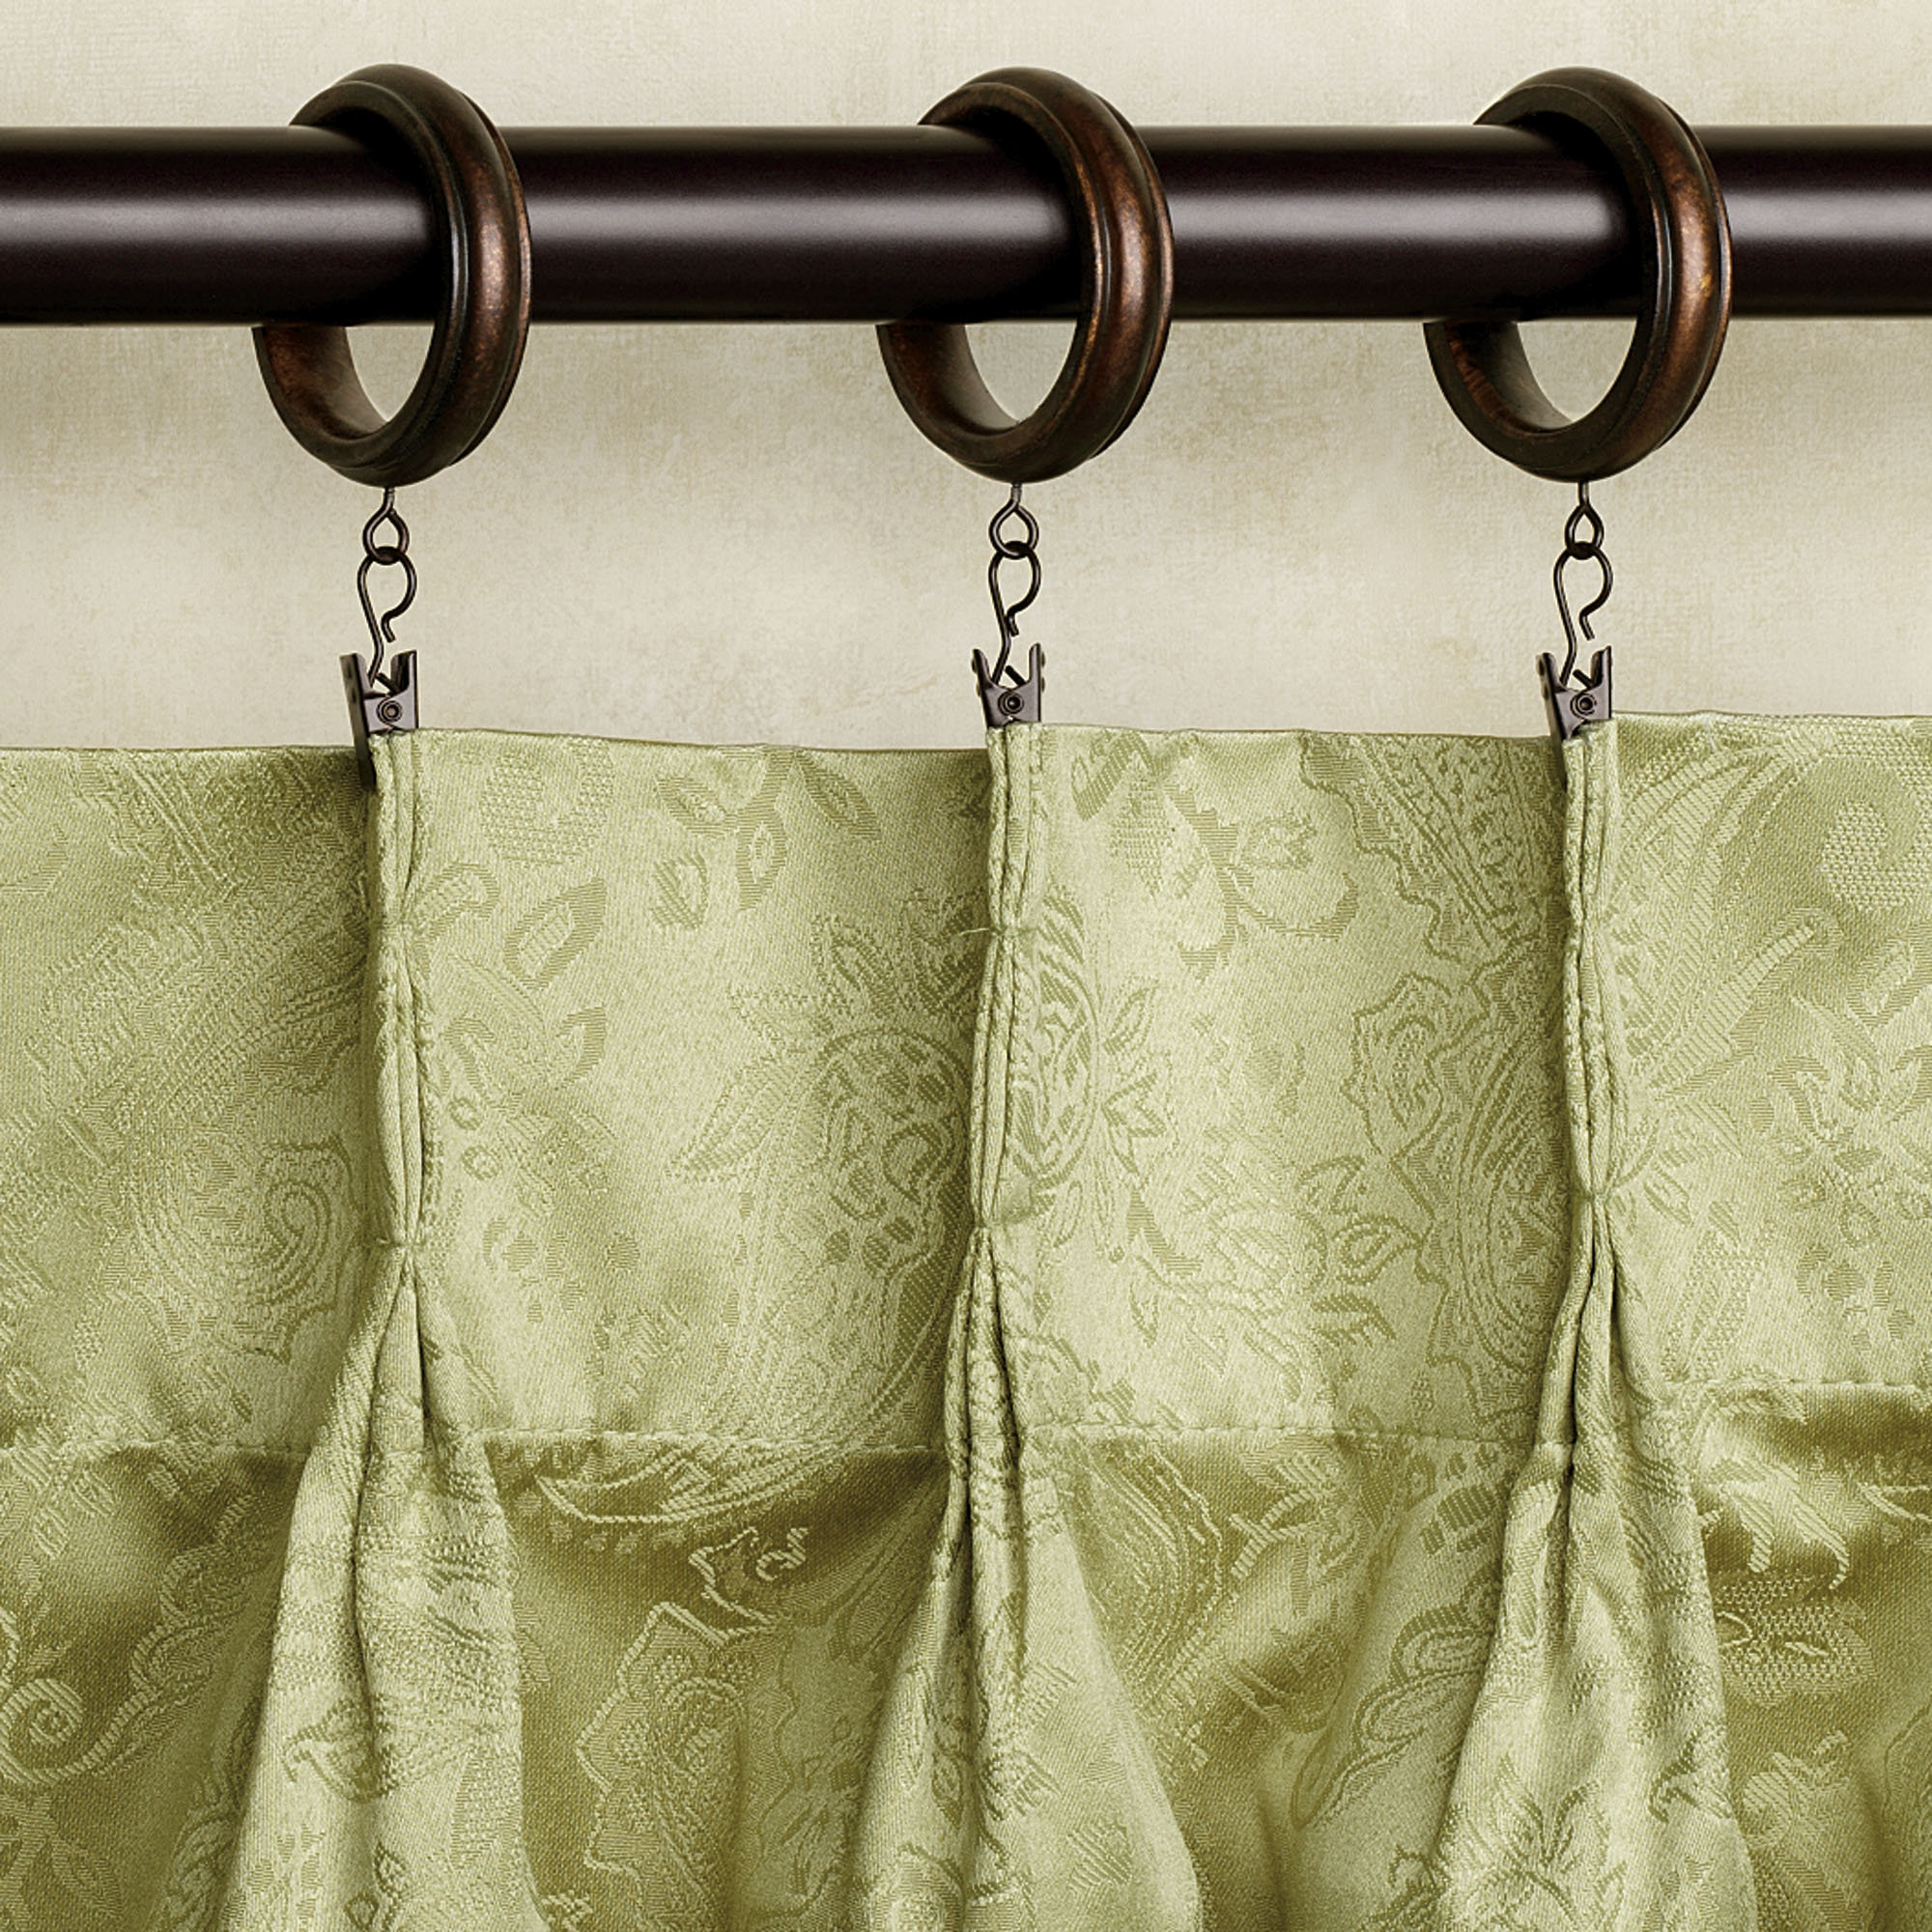 Clip On Curtain Rings Furniture Ideas DeltaAngelGroup